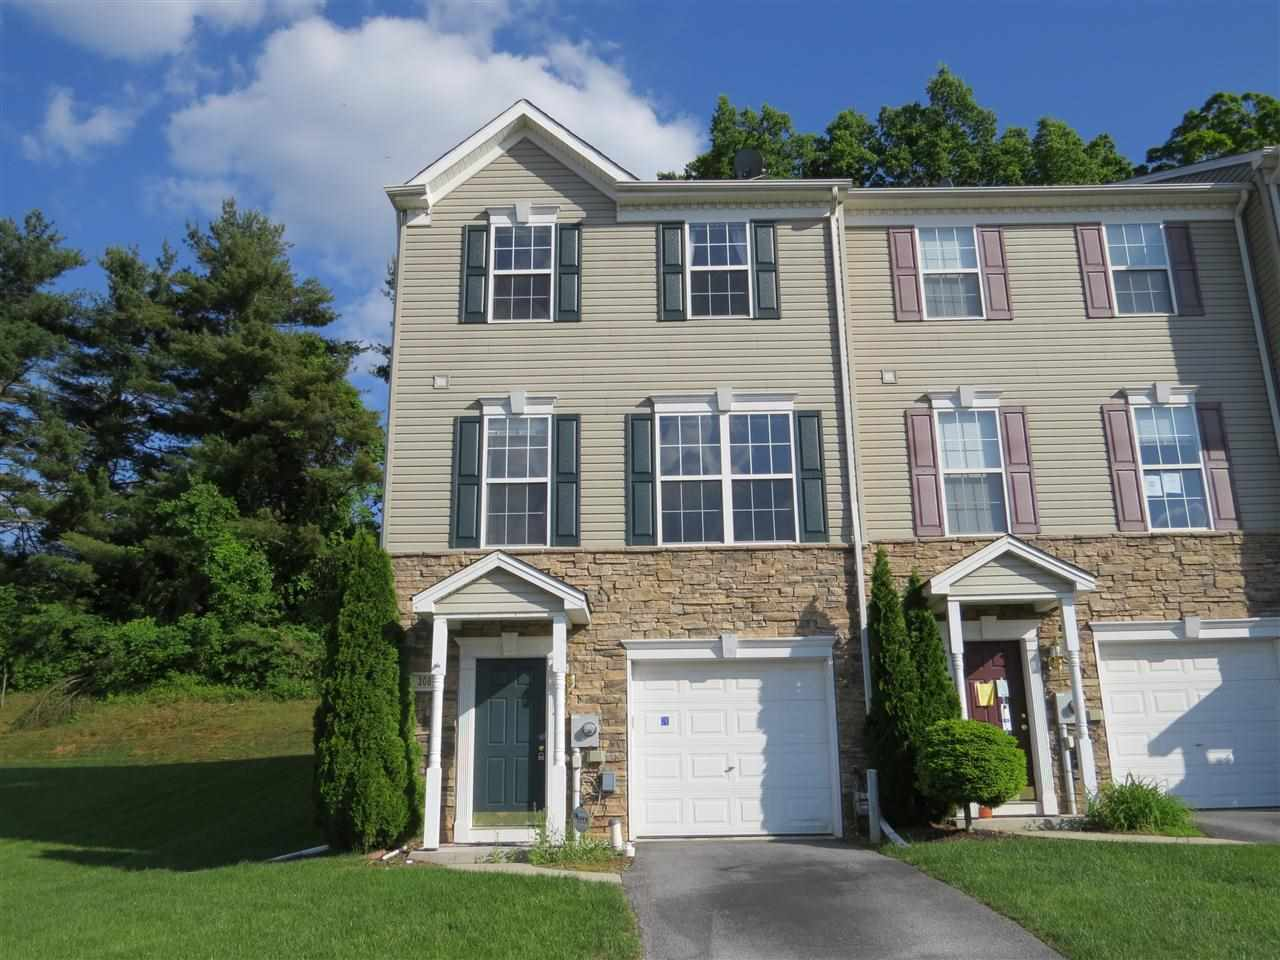 308 Bruaw Dr, York, PA 17406